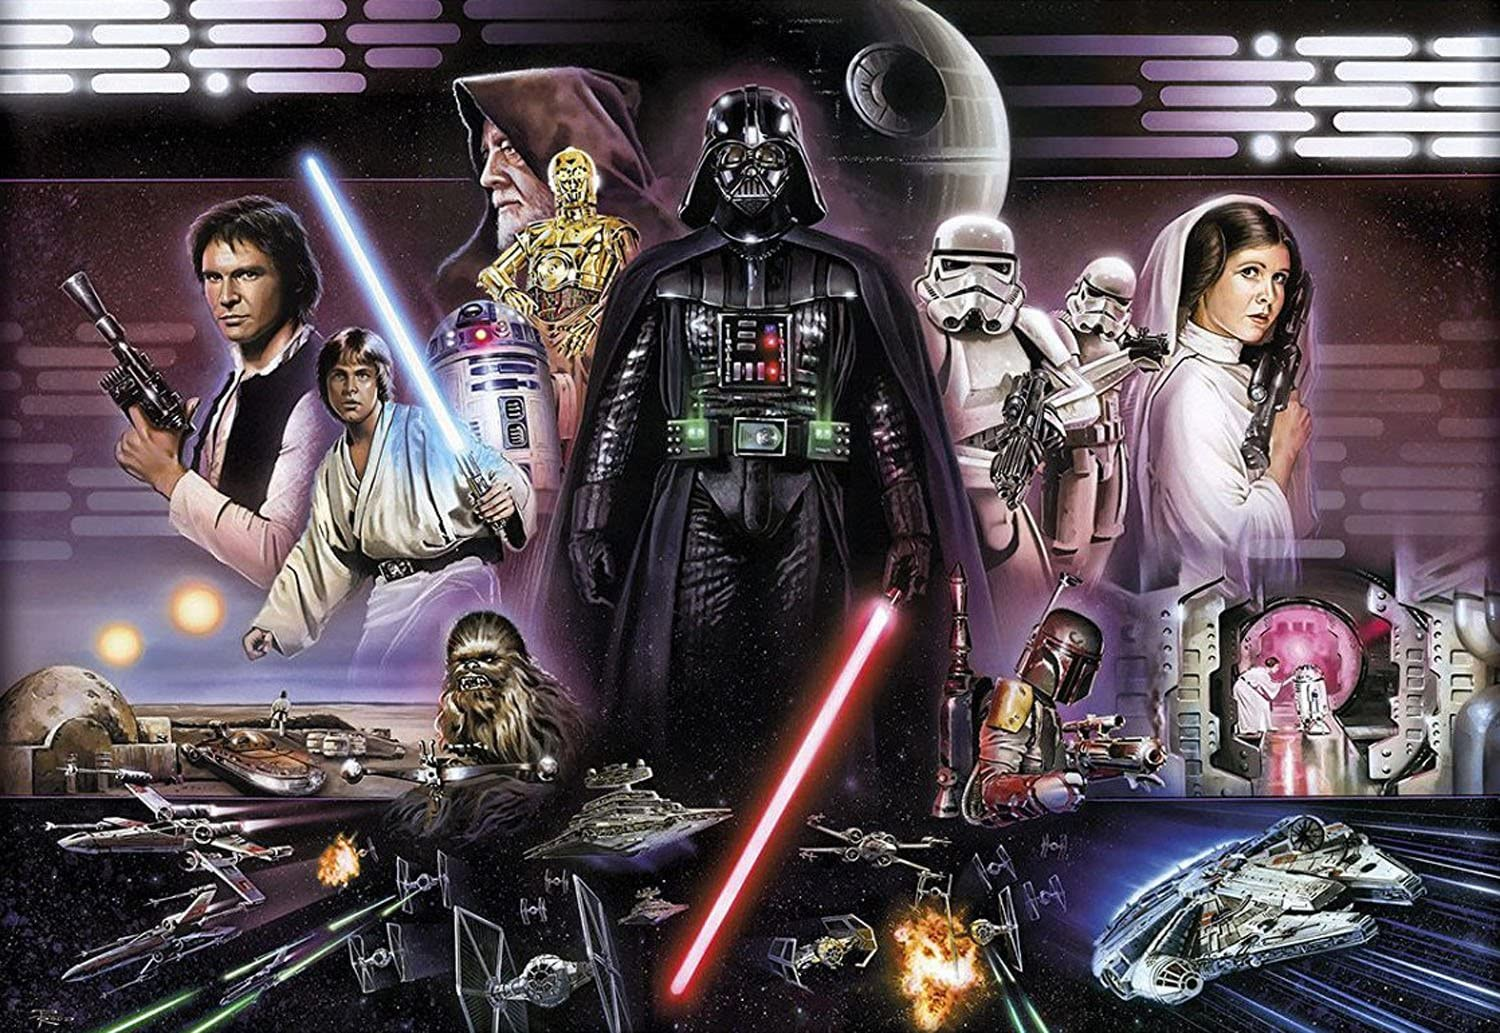 Wall Mural Photo Wallpaper Star Wars Darth Vader Collage 12 1 X 8 4 The Dark Heroes In One Picture Wall Stickers Murals Amazon Canada